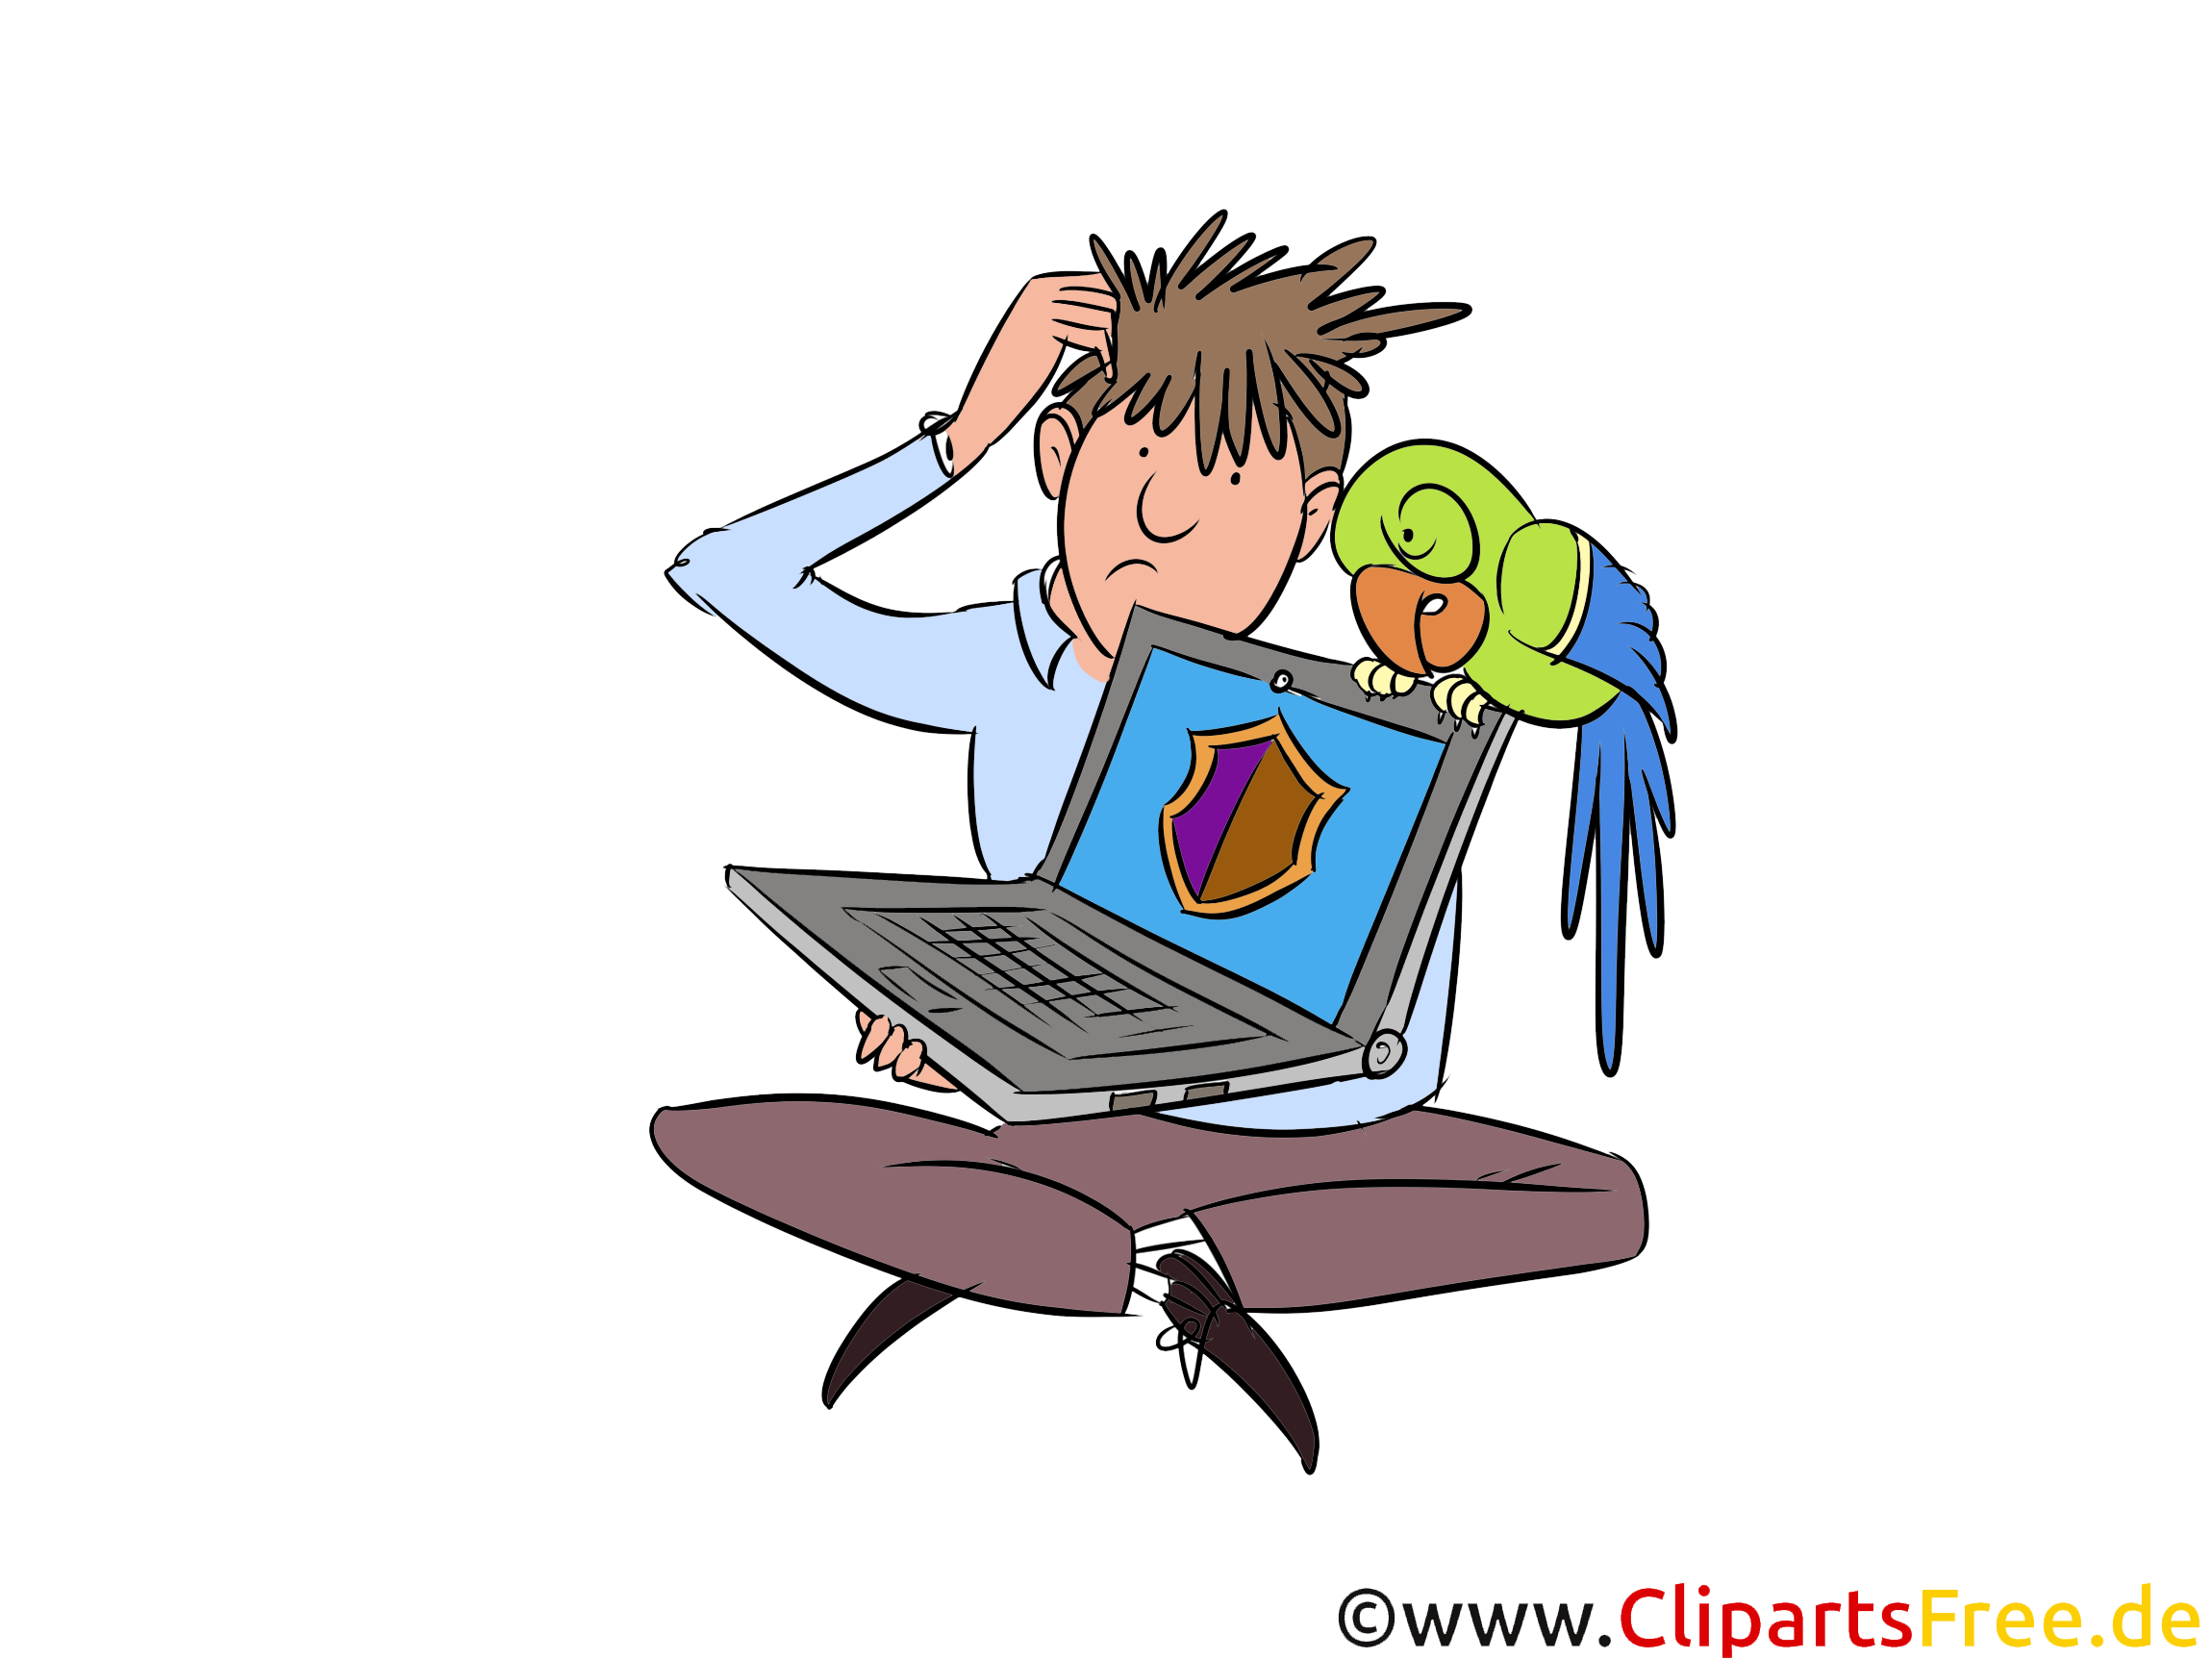 Clipart Administrator, IT-Fachkraft, IT-Sicherheit